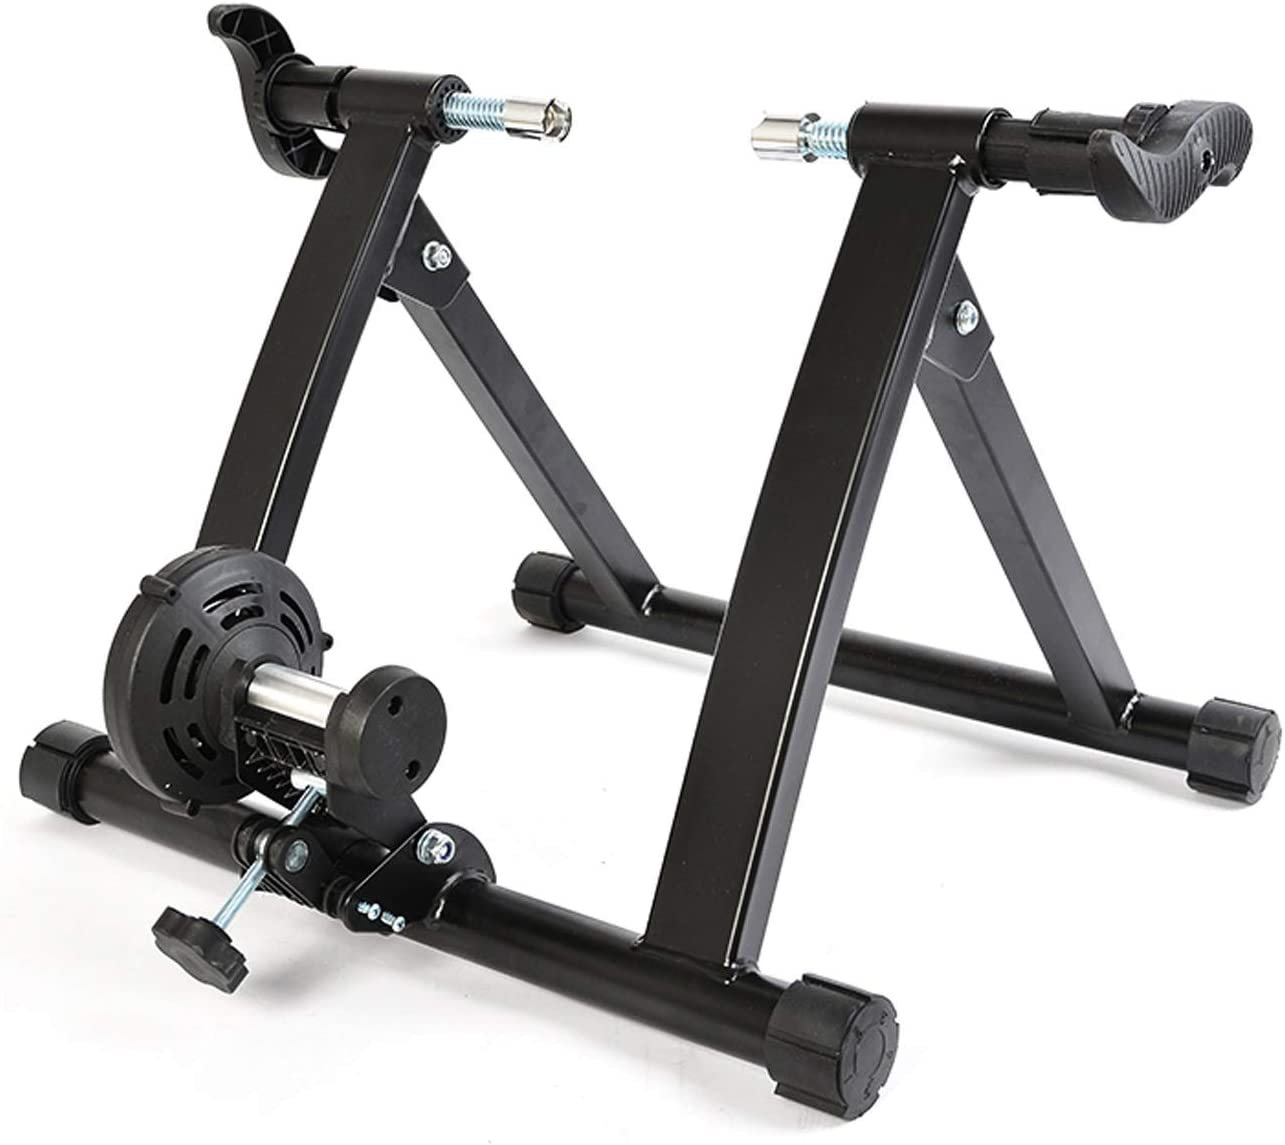 SJNQJJ Bike Trainer Stand Foldable Exercise Indoor Bicycle Turbo Limited time Topics on TV cheap sale